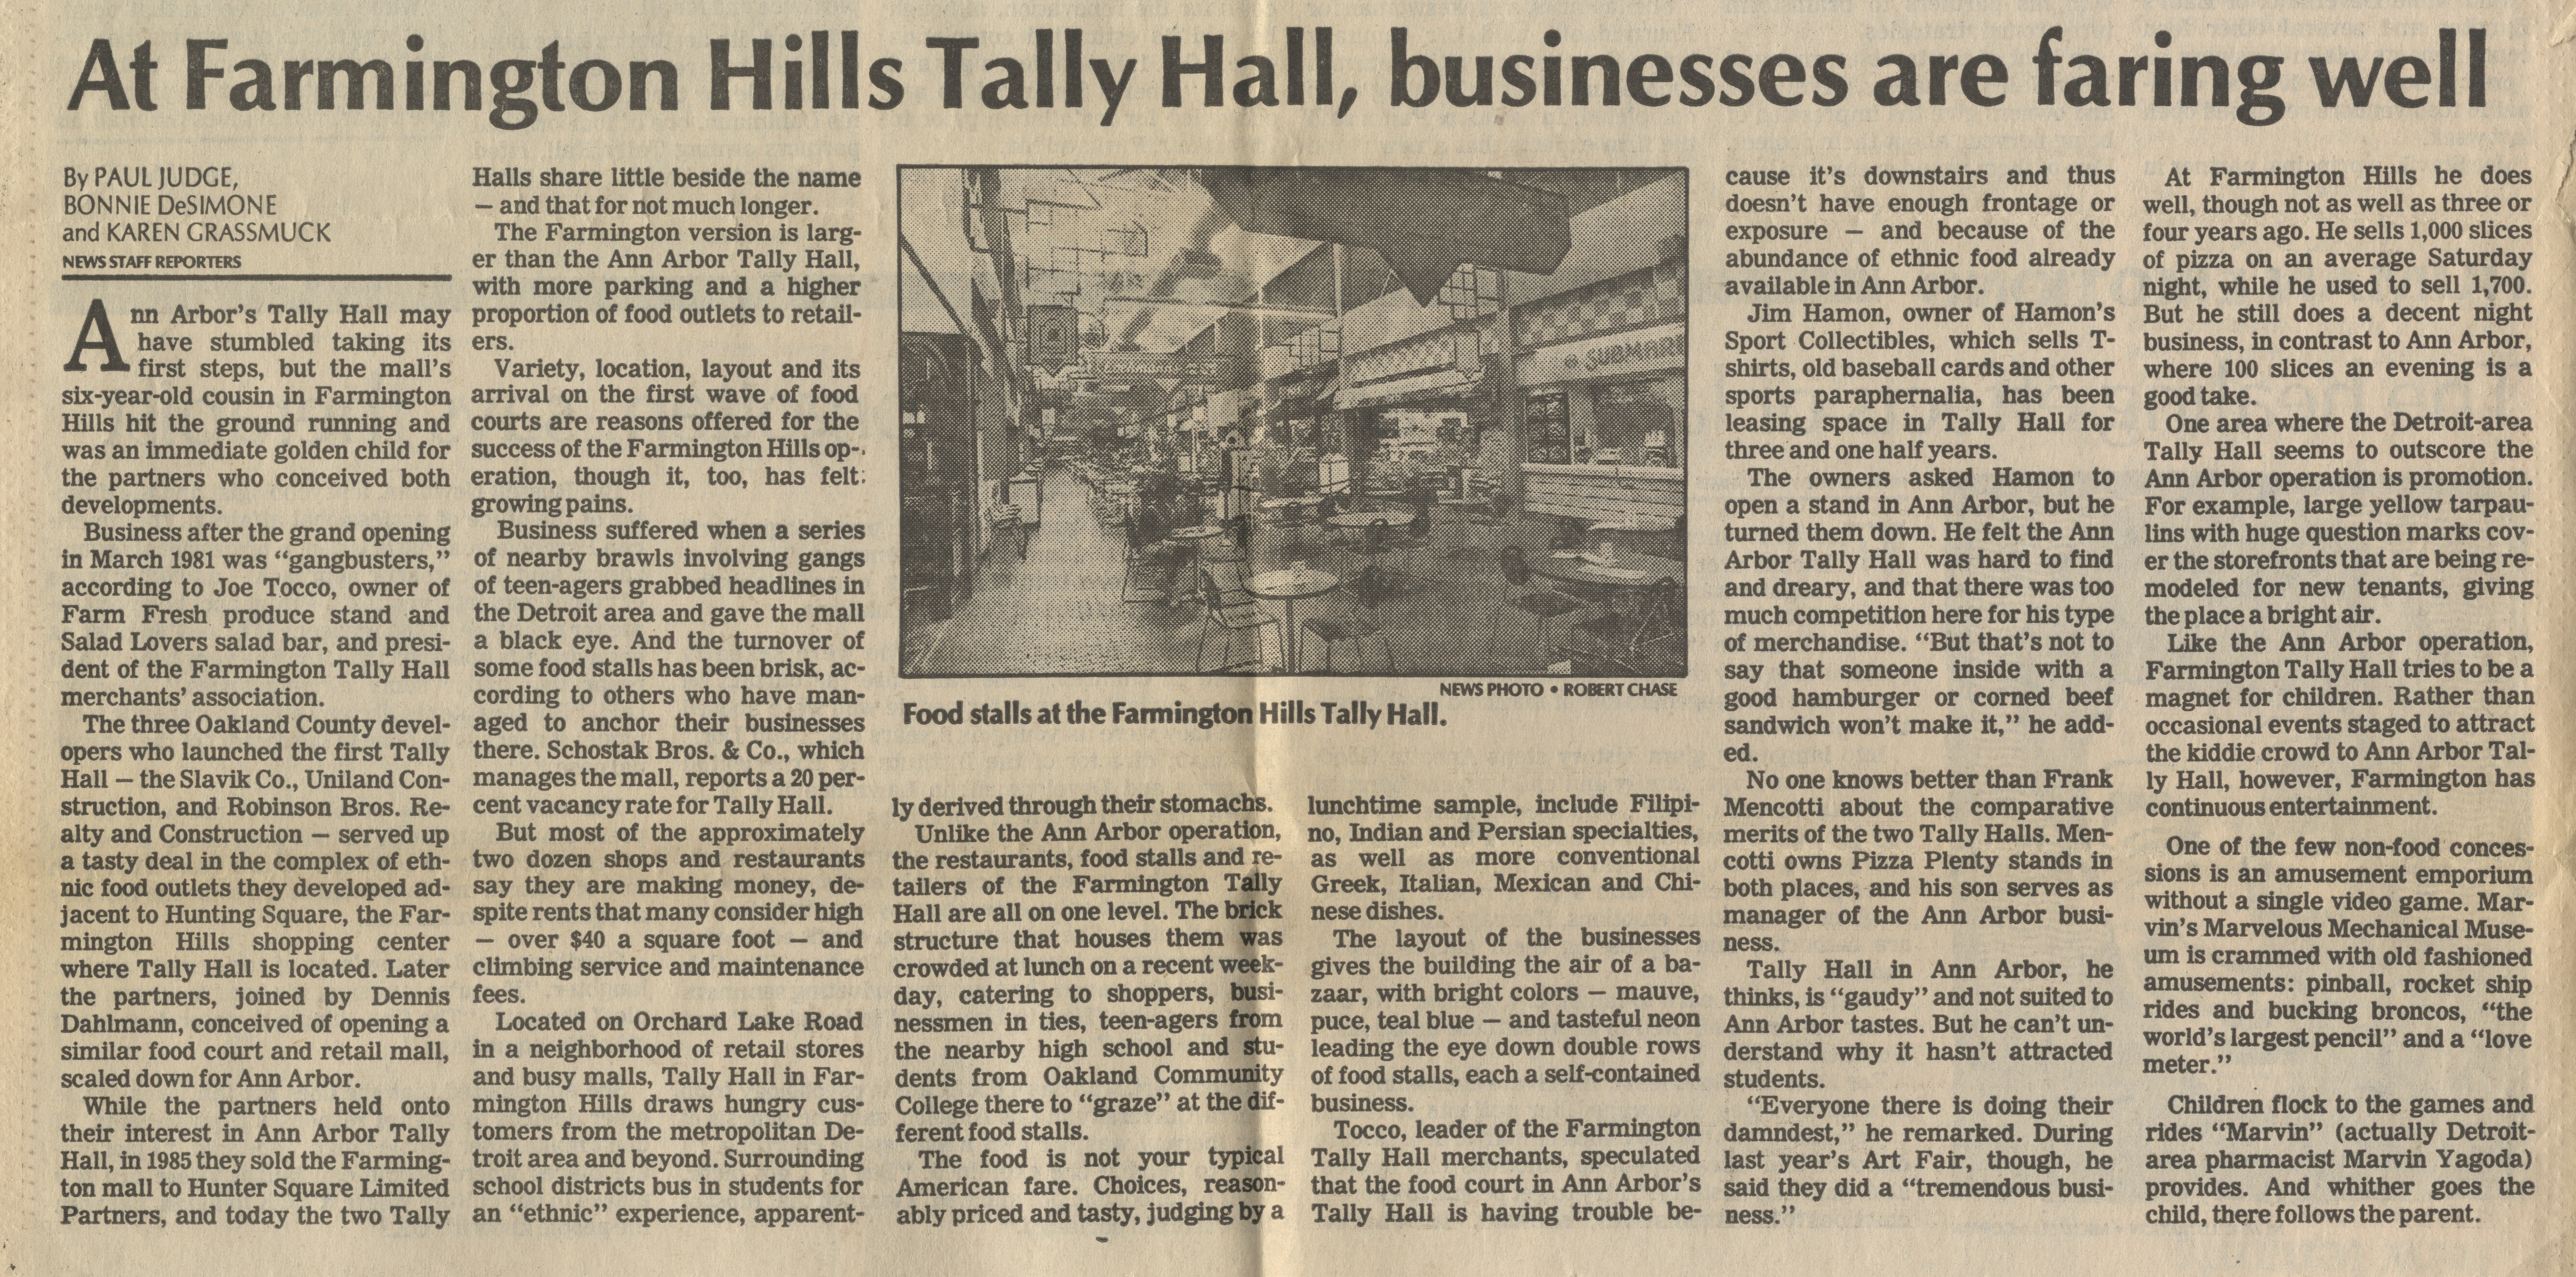 At Farmington Hills Tally Hall, Businesses Are Faring Well image